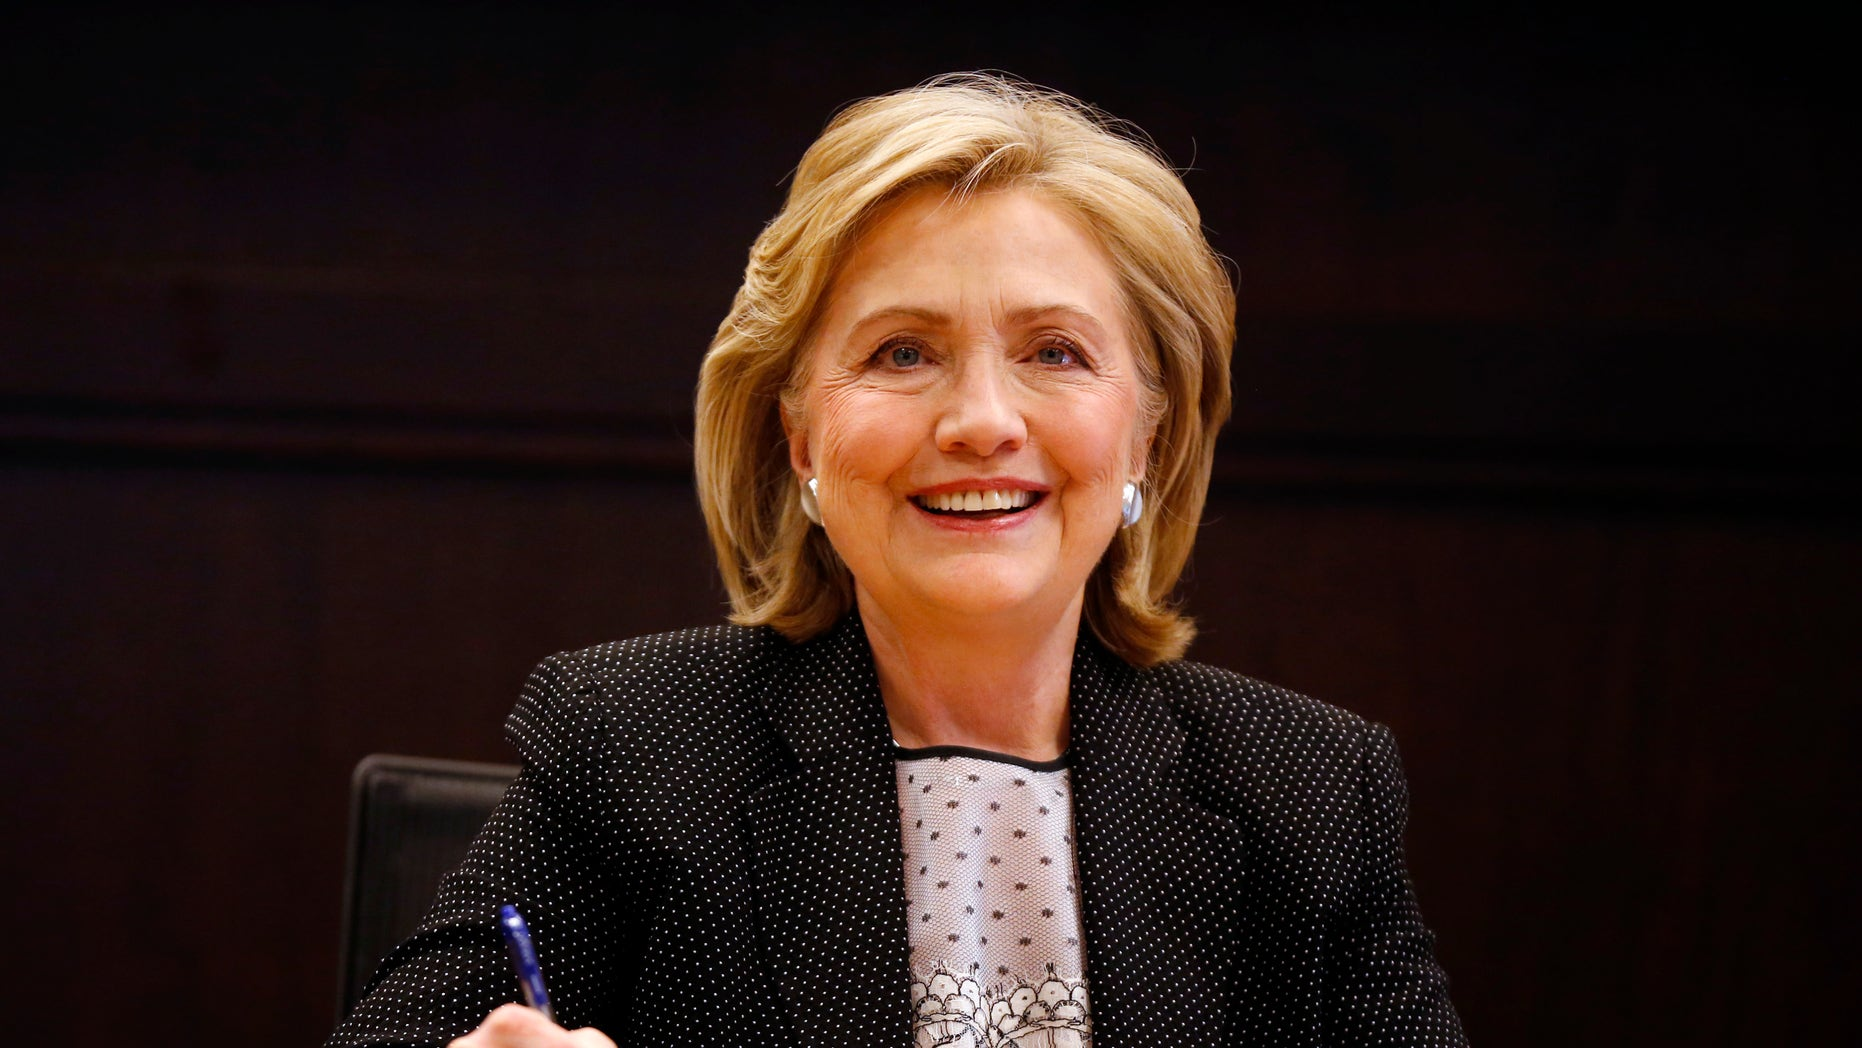 "Former U.S. Secretary of State Hillary Clinton signs copies of her book ""Hard Choices"" at a Barnes & Noble book store in Los Angeles, California June 19, 2014.  REUTERS/Lucy Nicholson    (UNITED STATES - Tags: POLITICS MEDIA) - RTR3UQNK"